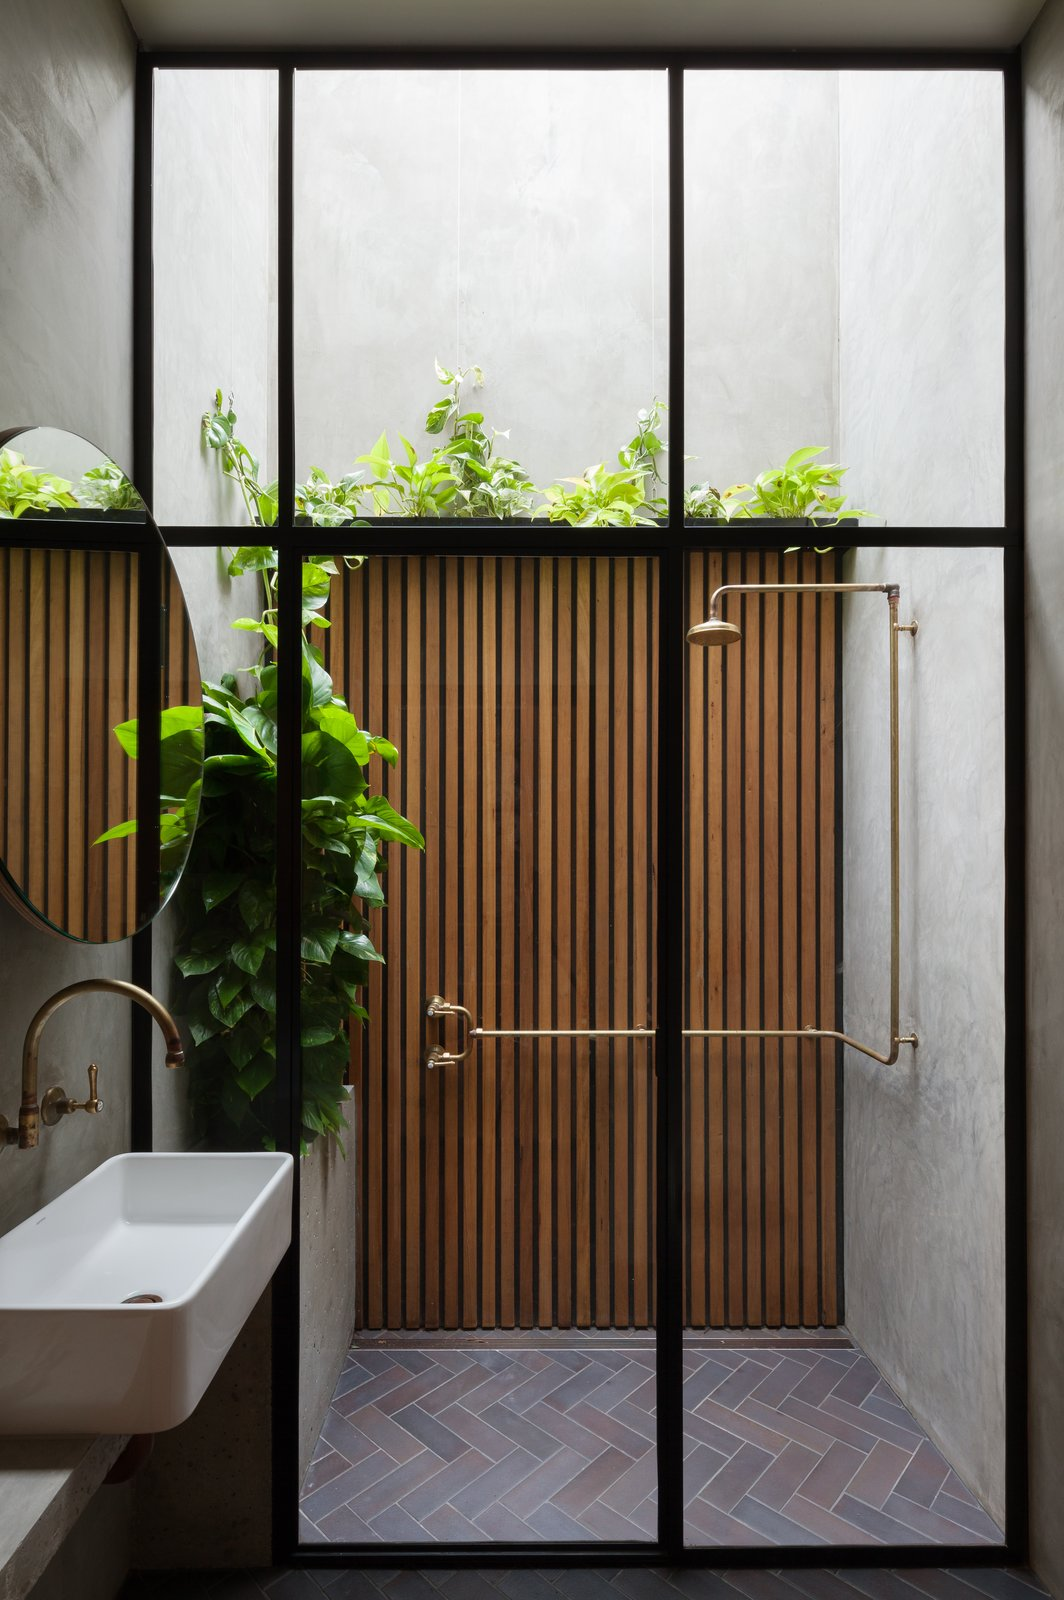 Bath, Vessel, Full, Brick, Concrete, and Concrete In the bathroom, the shower stall looks up to the open sky.  Best Bath Photos from This Renovated Sydney Home Feels Like a Superhero's Secret Lair